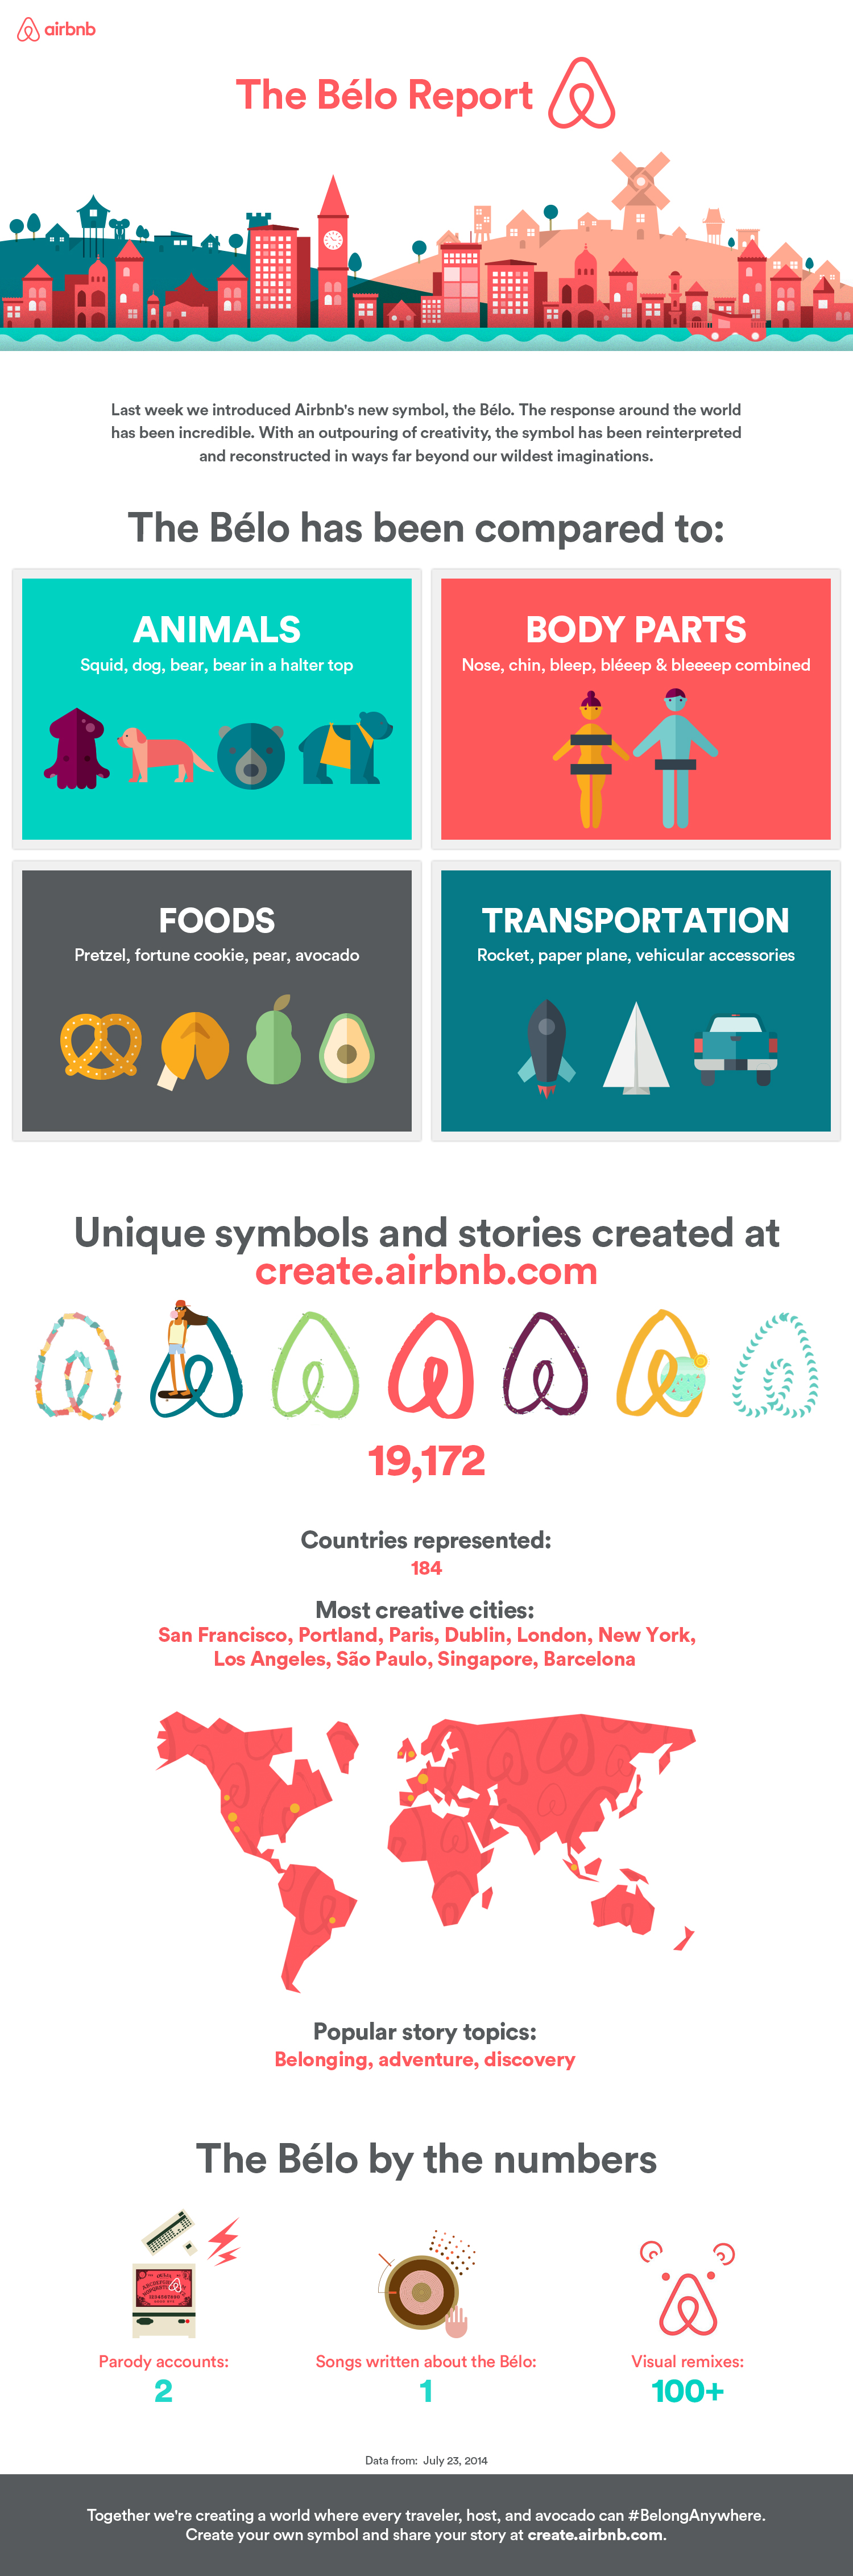 Airbnb_Belo_infographic